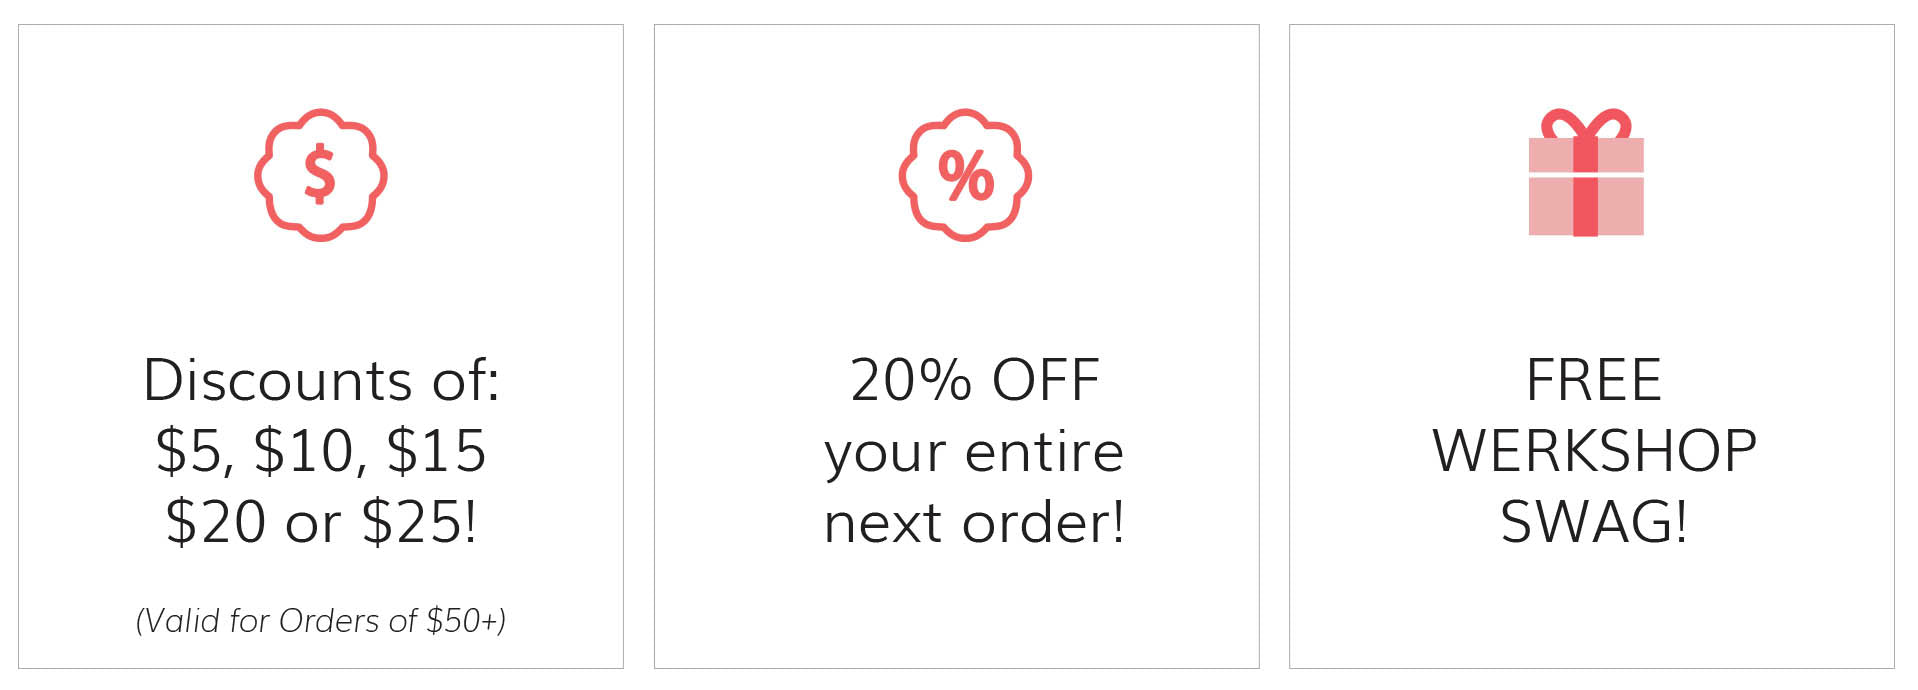 redeem points for discounts of $5, $10, $15, $20, $25 (valid on orders of $25+) or 20% off your entire next order (or) for FREE WERKSHOP swag!